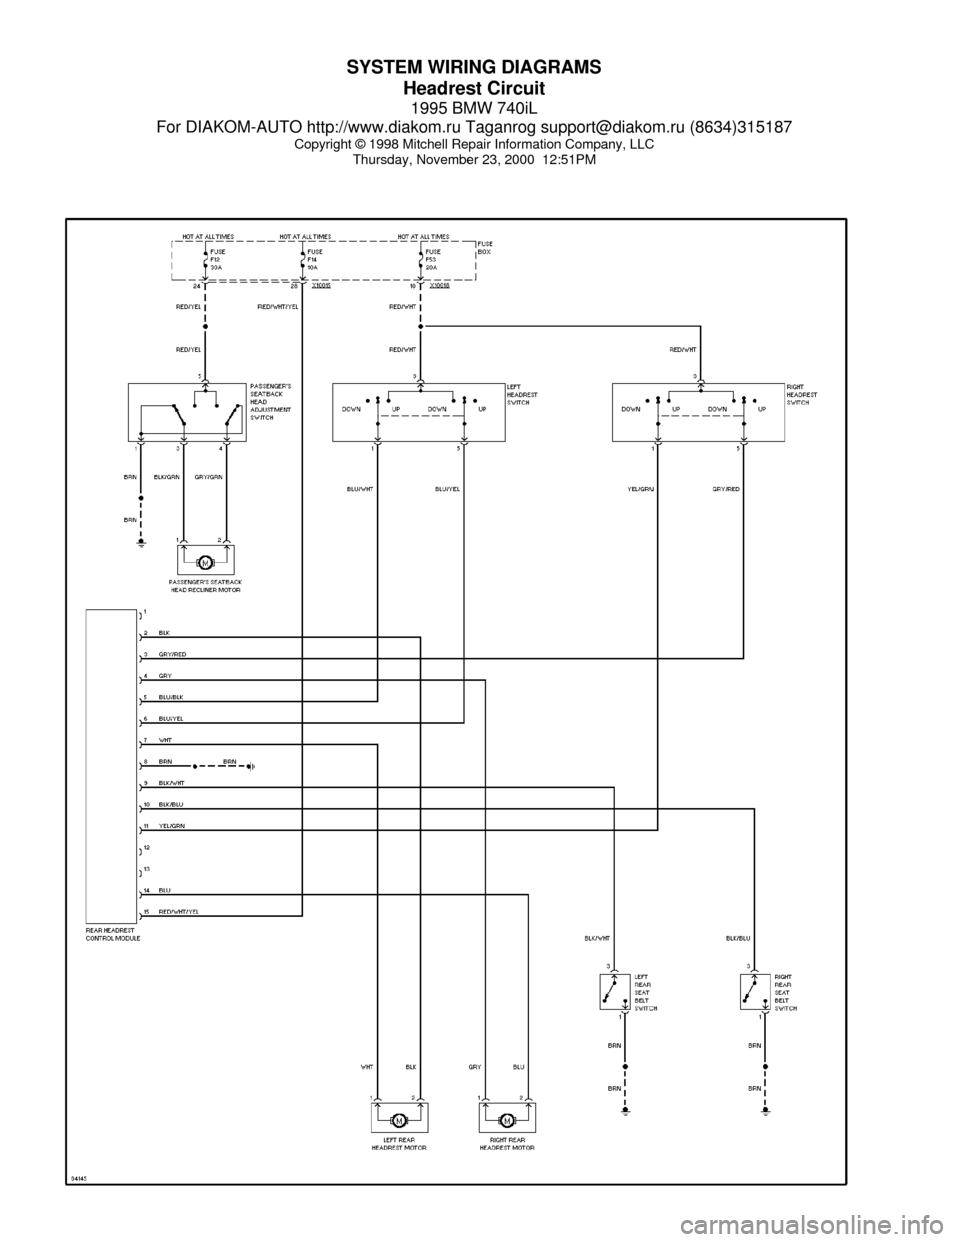 bmw 740il 1995 e38 system wiring diagrams 1996 bmw 740il wiring diagram